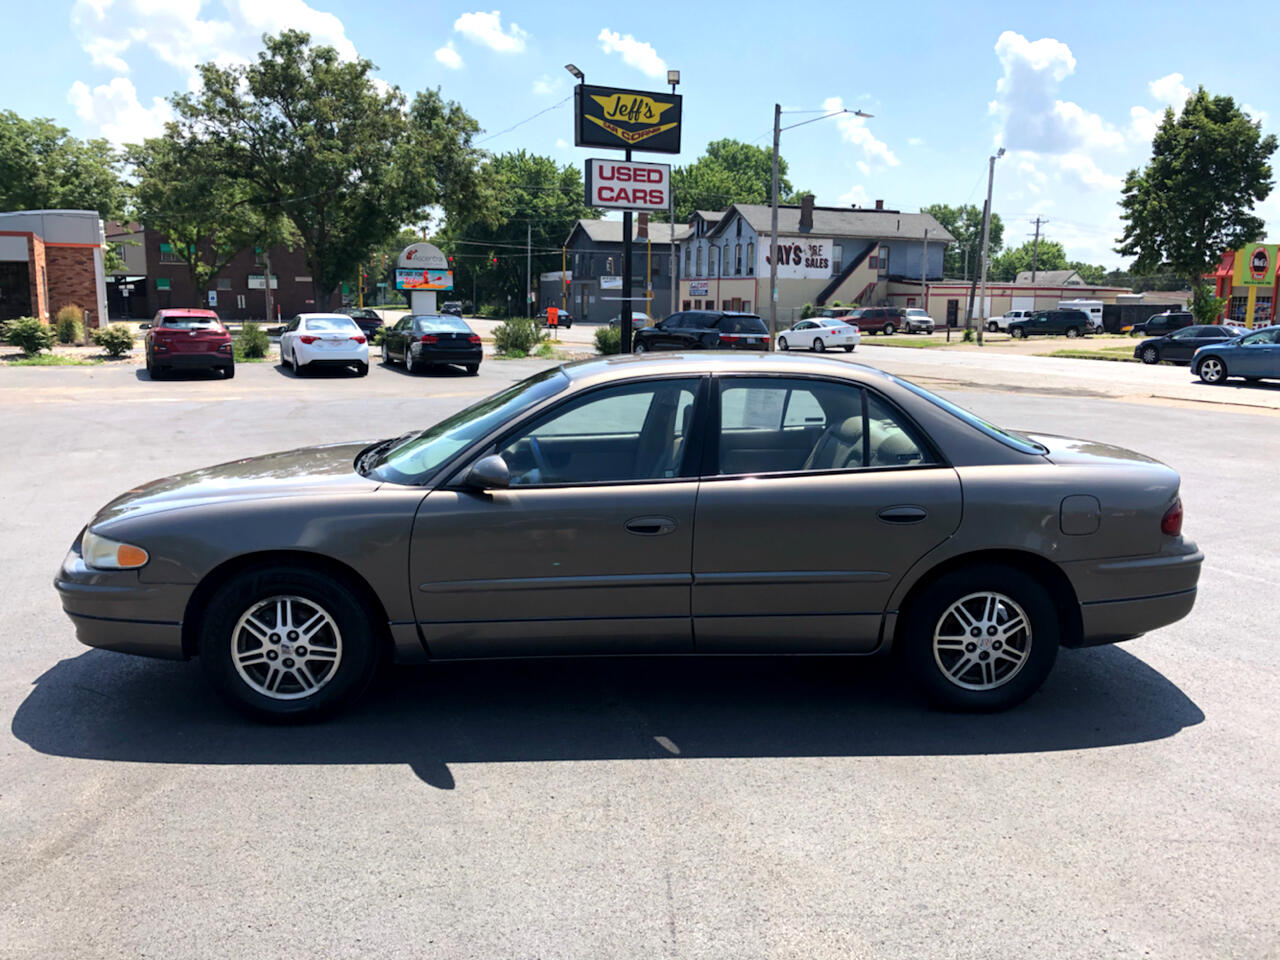 used 2002 buick regal ls for sale in davenport ia 52802 jeff s car corner used 2002 buick regal ls for sale in